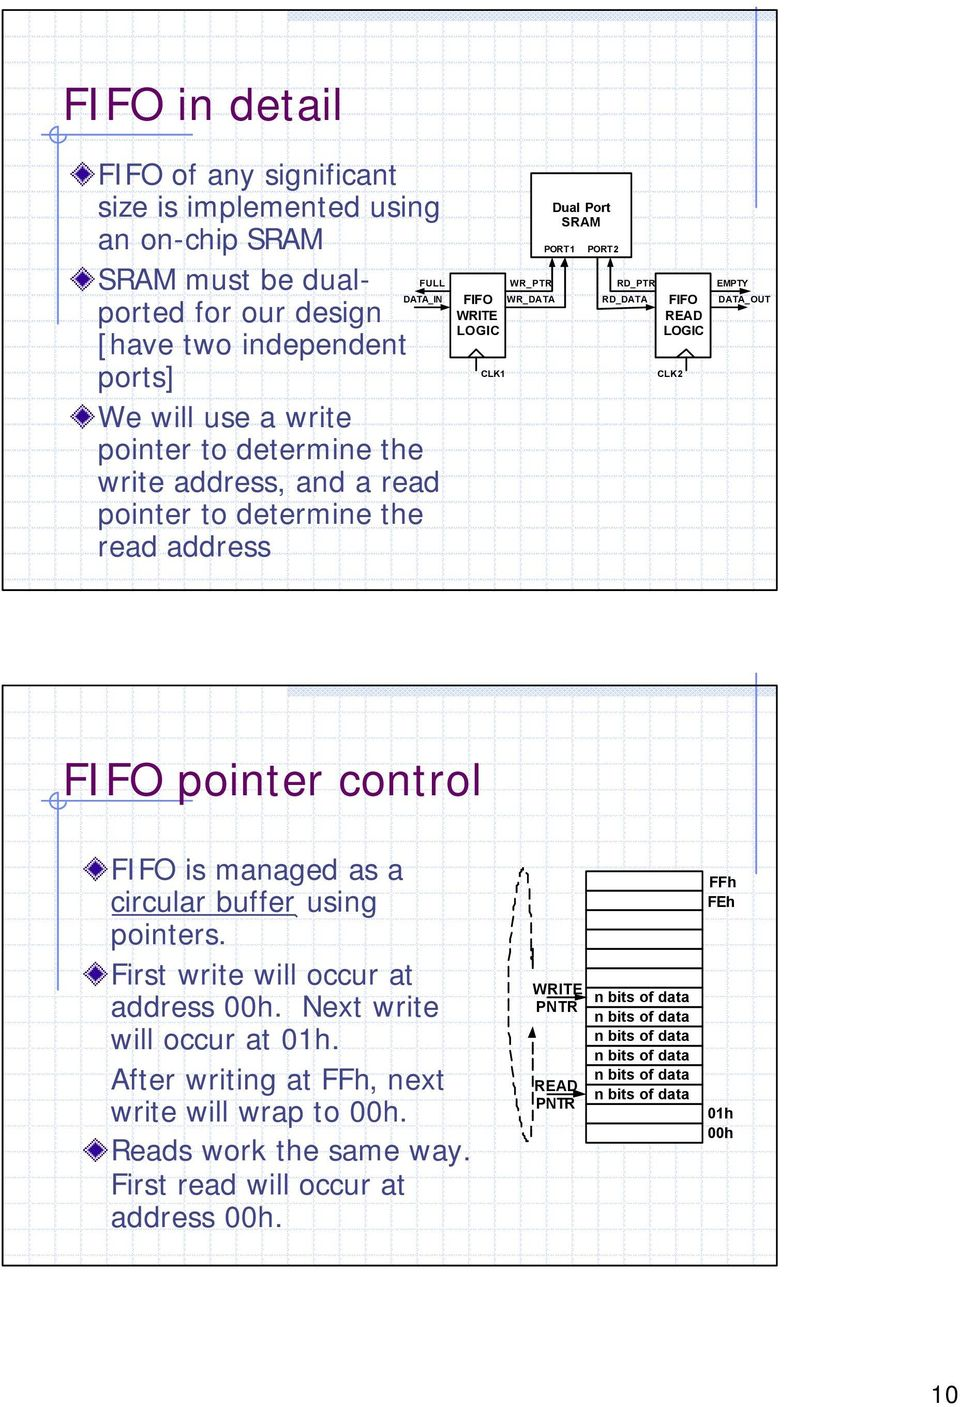 Synchronization In Digital Logic Circuits Why Care How To Read A Diagram Fifo Pointer Control Is Managed As Circular Buffer Using Pointers First Write Will